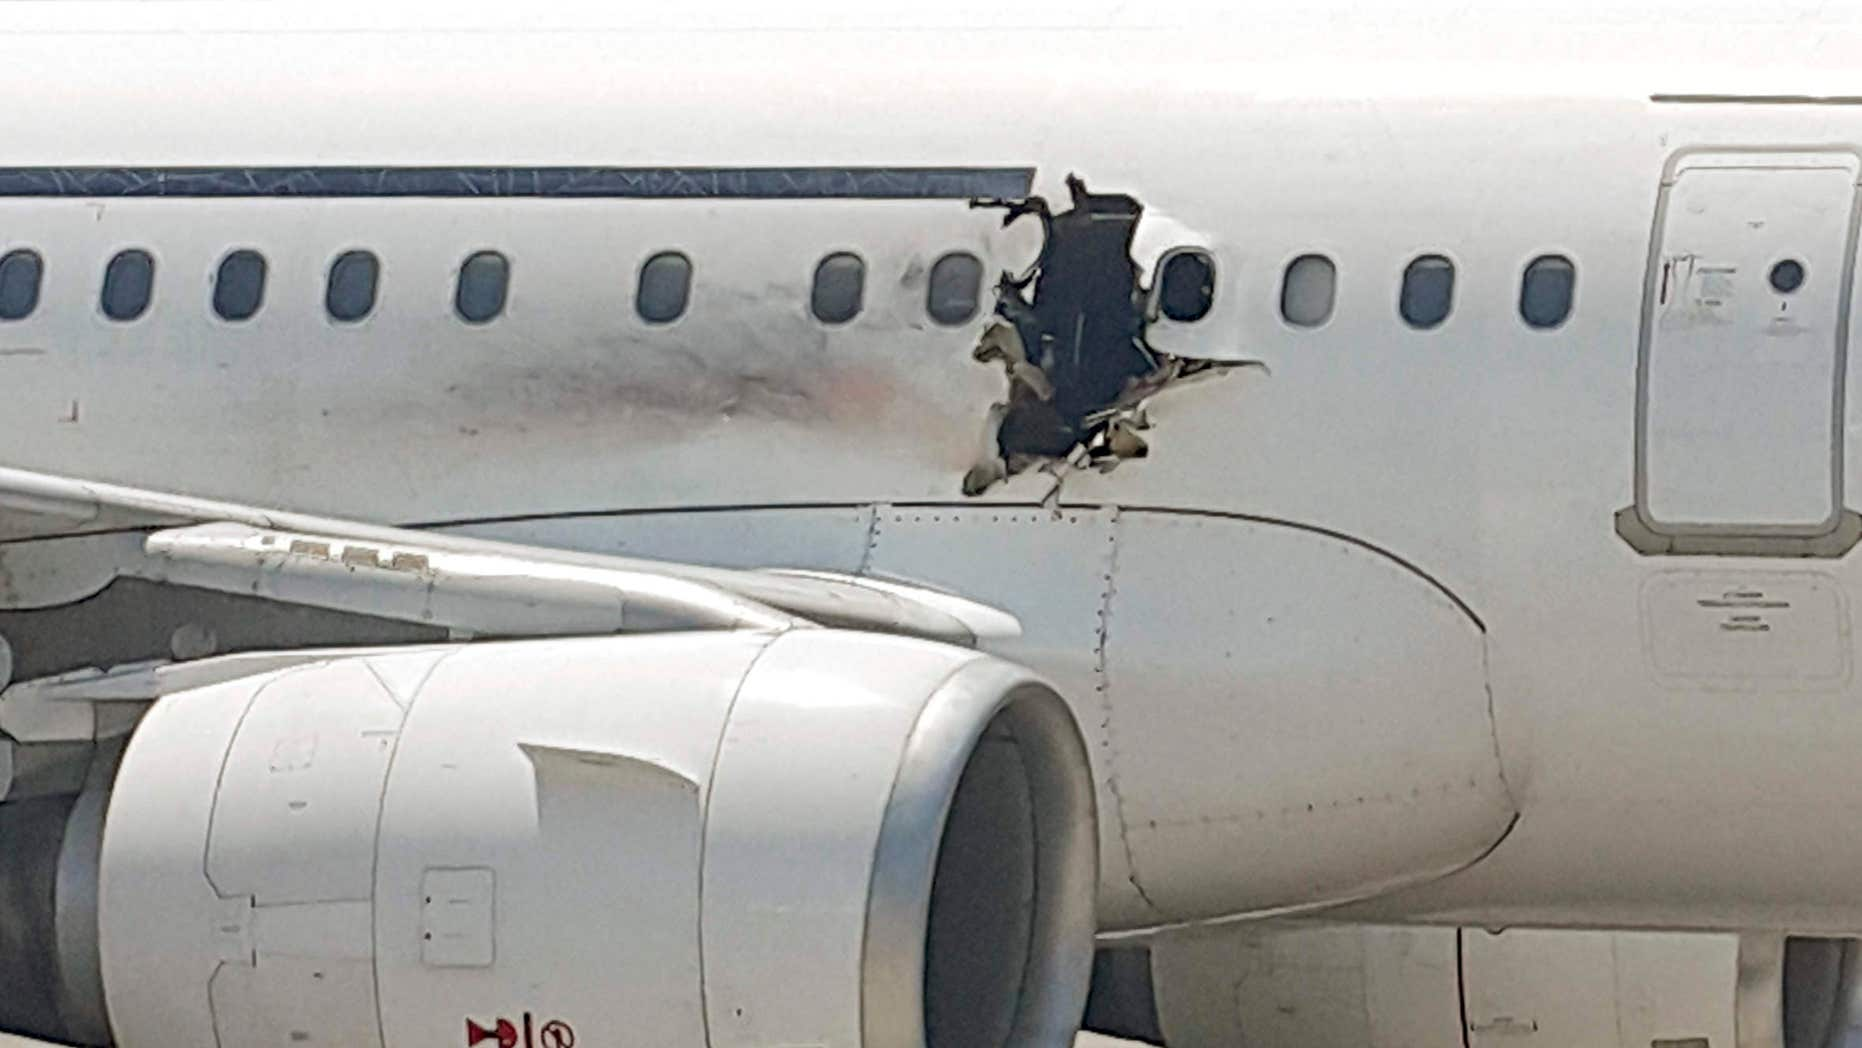 FILE - In this Tuesday, Feb. 2, 2016 file photo, a hole is photographed in a plane operated by Daallo Airlines as it sits on the runway of the airport in Mogadishu, Somalia.